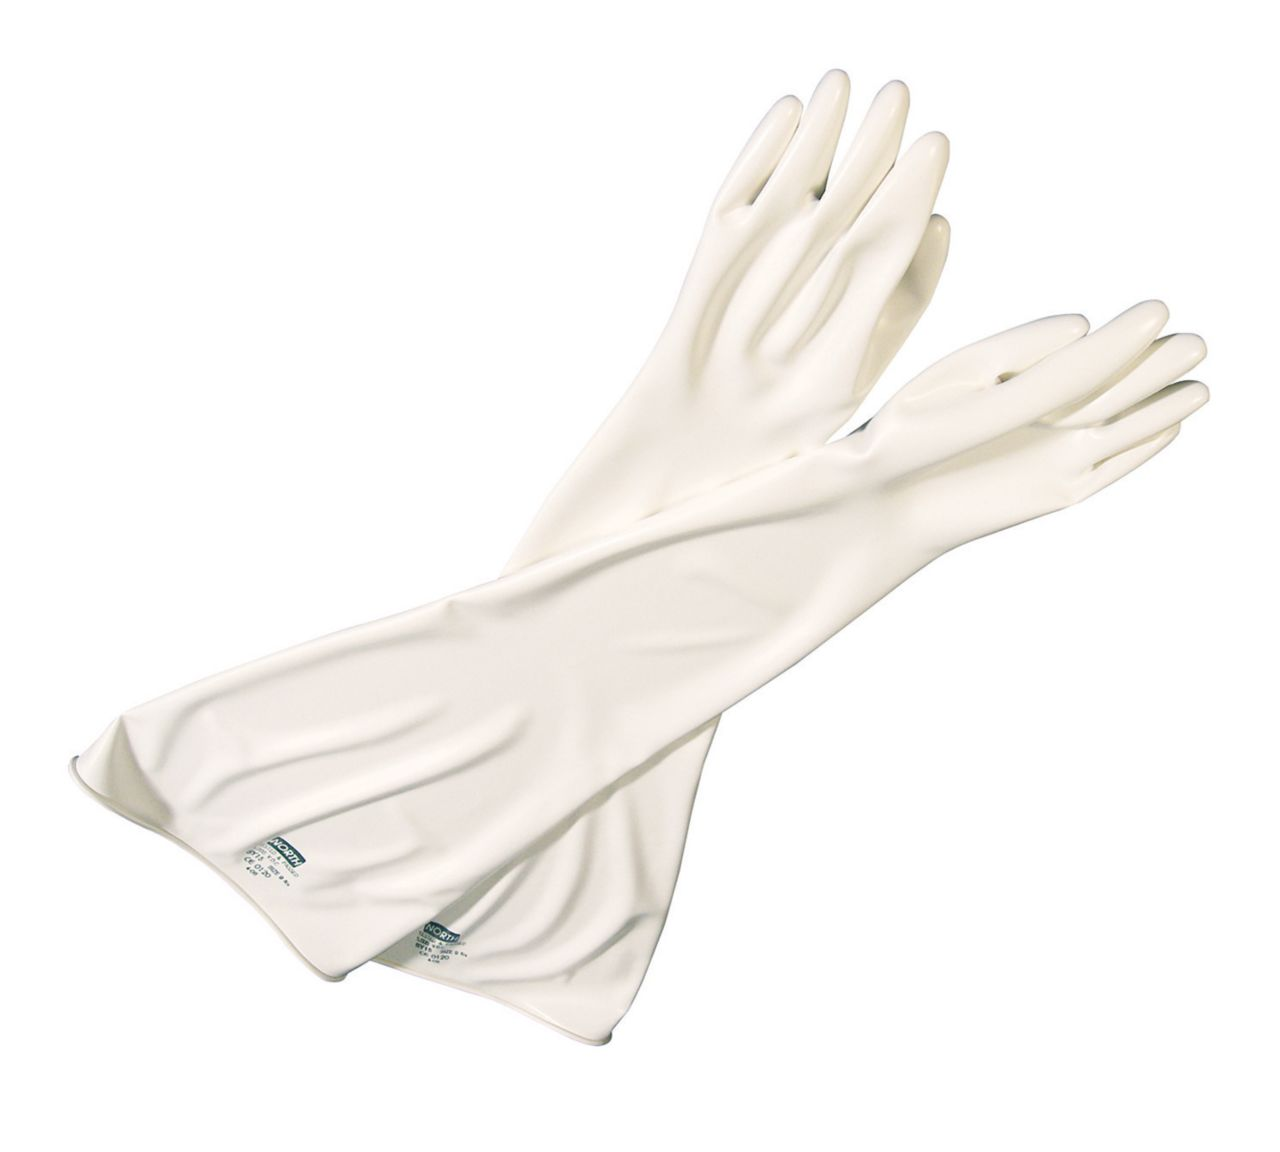 CSM Glovebox Gloves - 7YLY3032